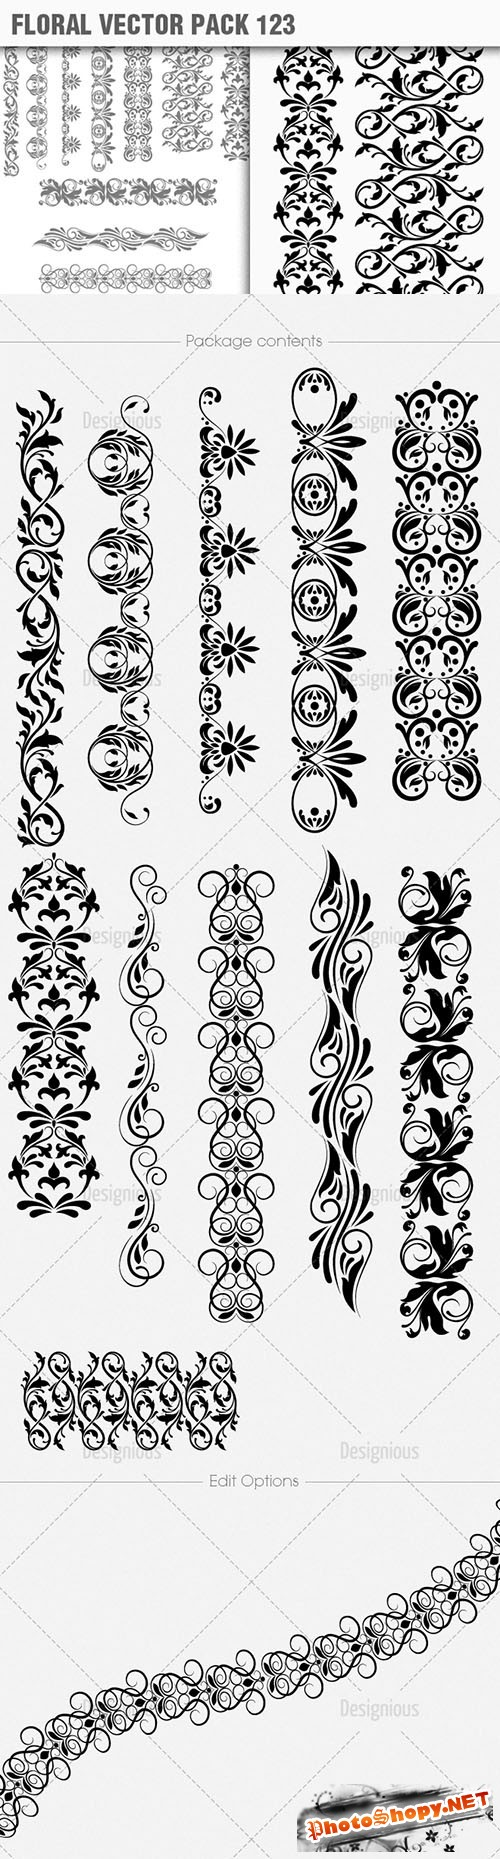 Floral Vector Pack 123